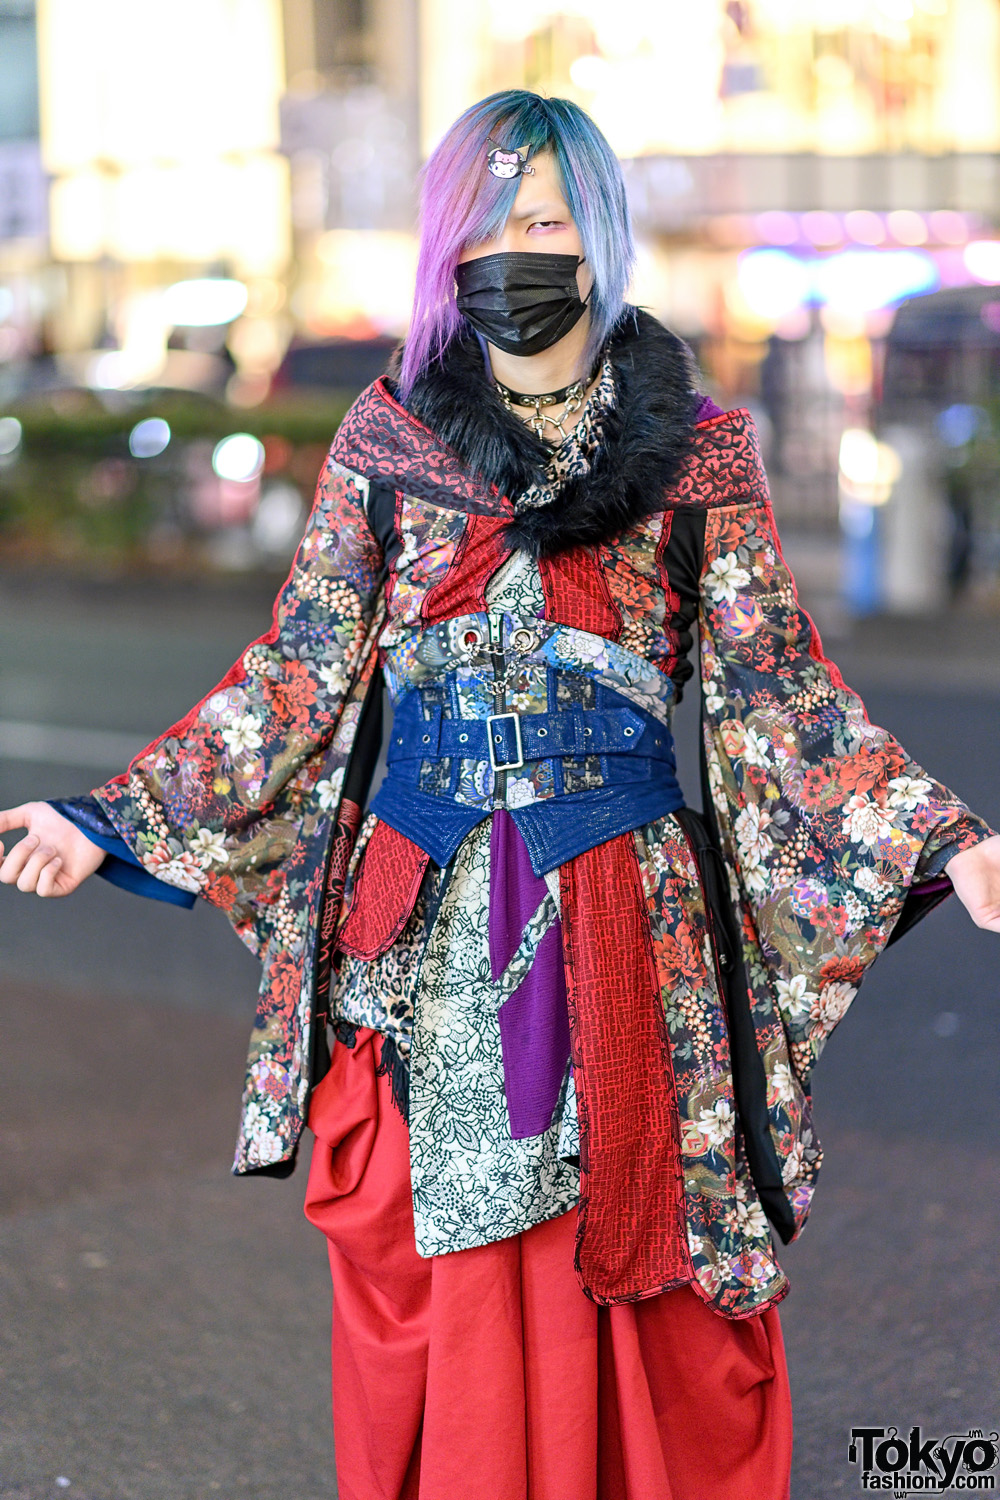 Qutie Frash Kimono Style In Harajuku W Pink And Blue Hair